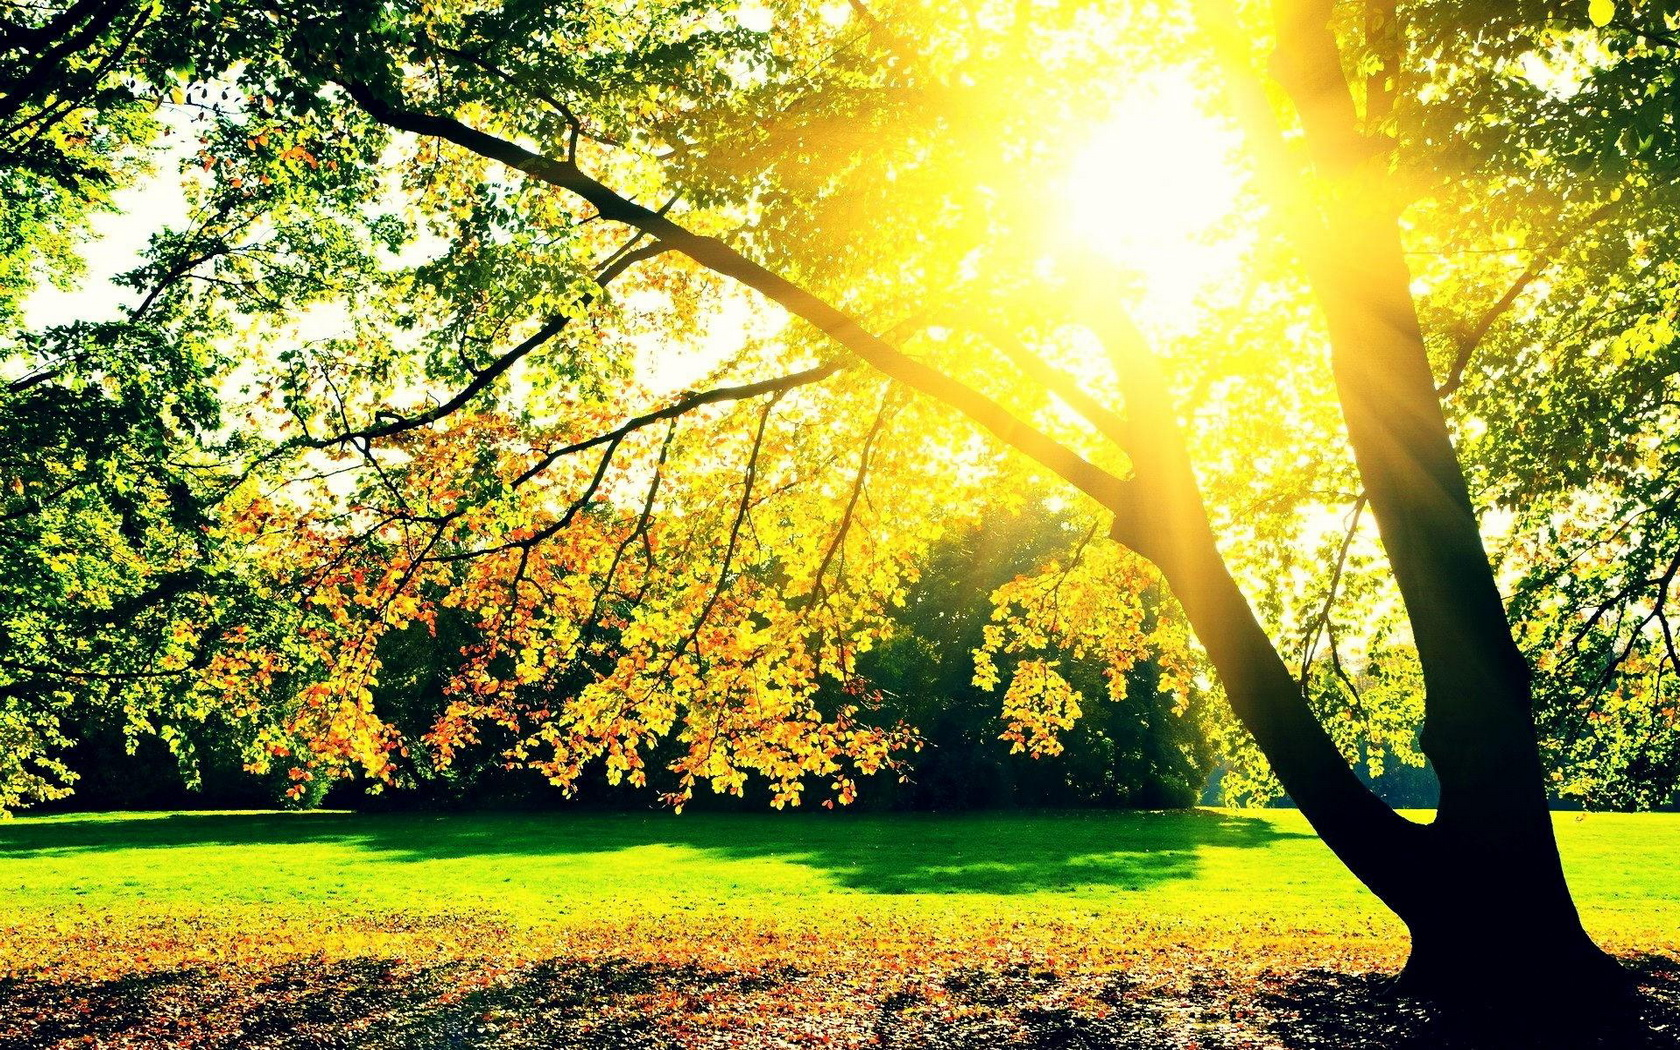 Hd Widescreen Fall Wallpaper Autumn Sunrise Wallpaper And Background Image 1680x1050